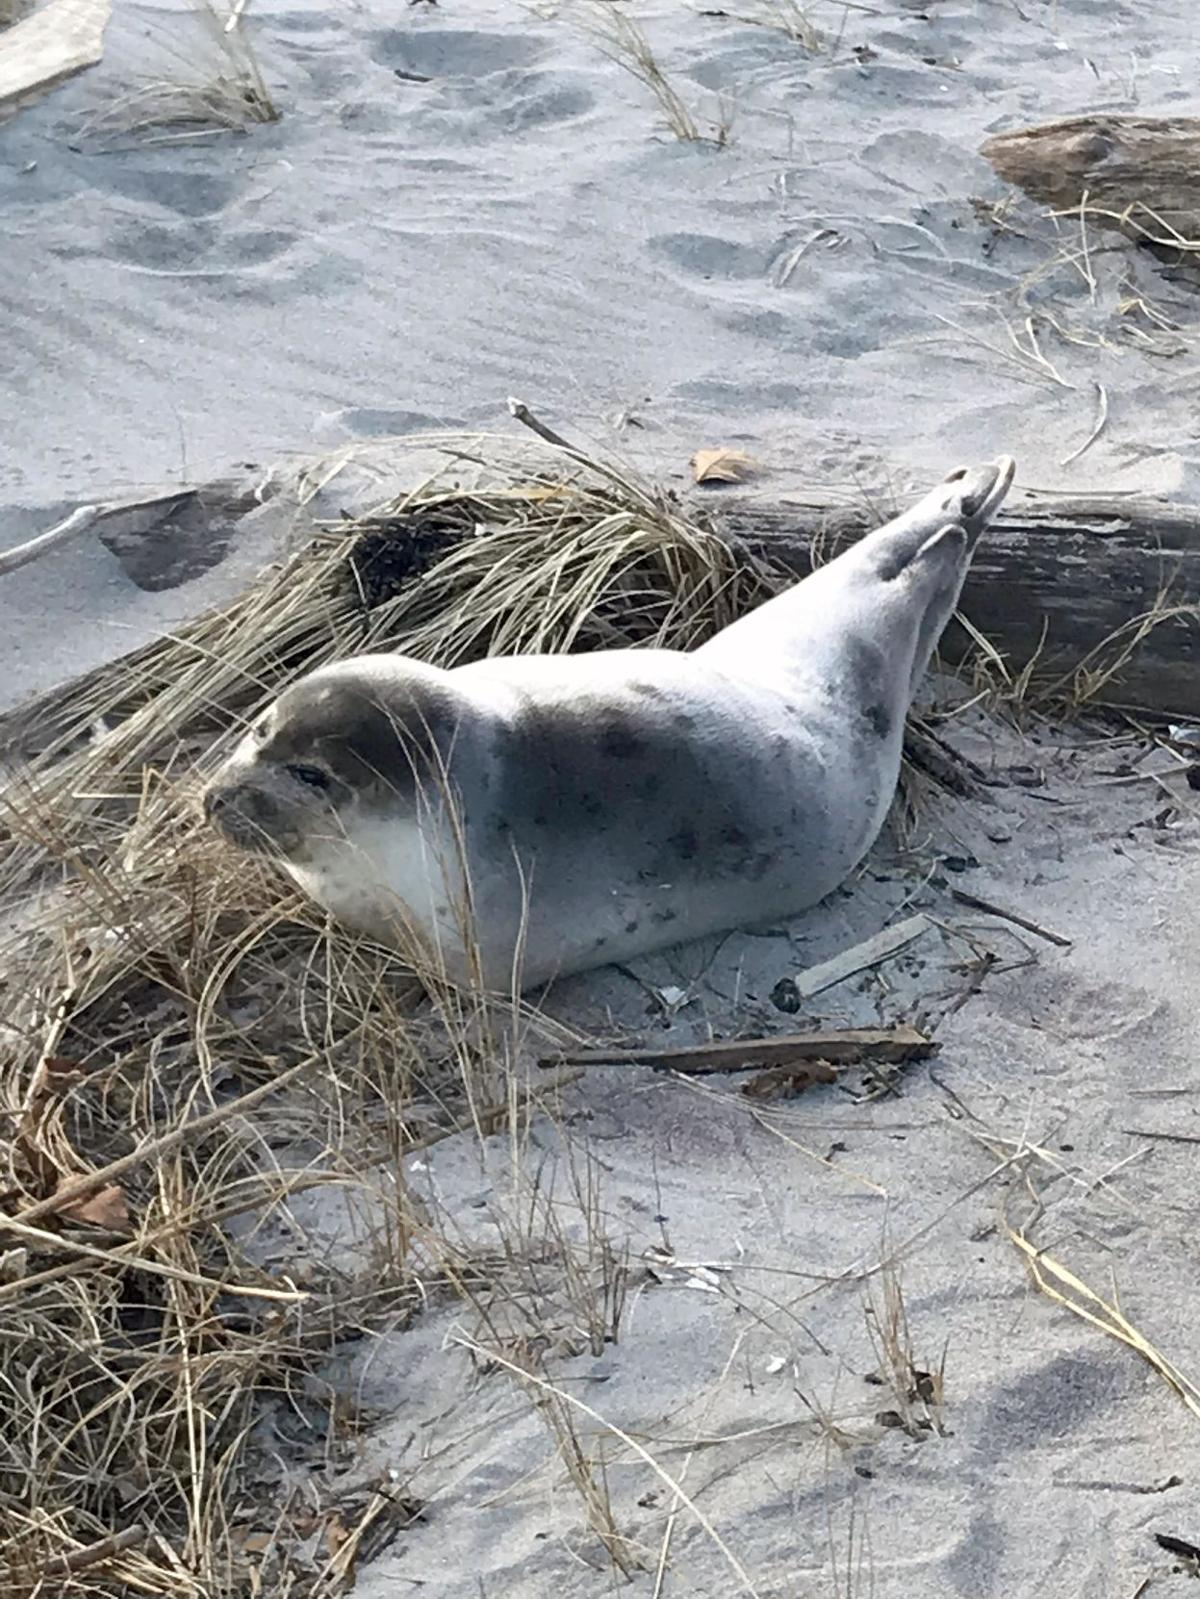 Seal spotted at Hammo not unusual occurence; 'pupping season' now